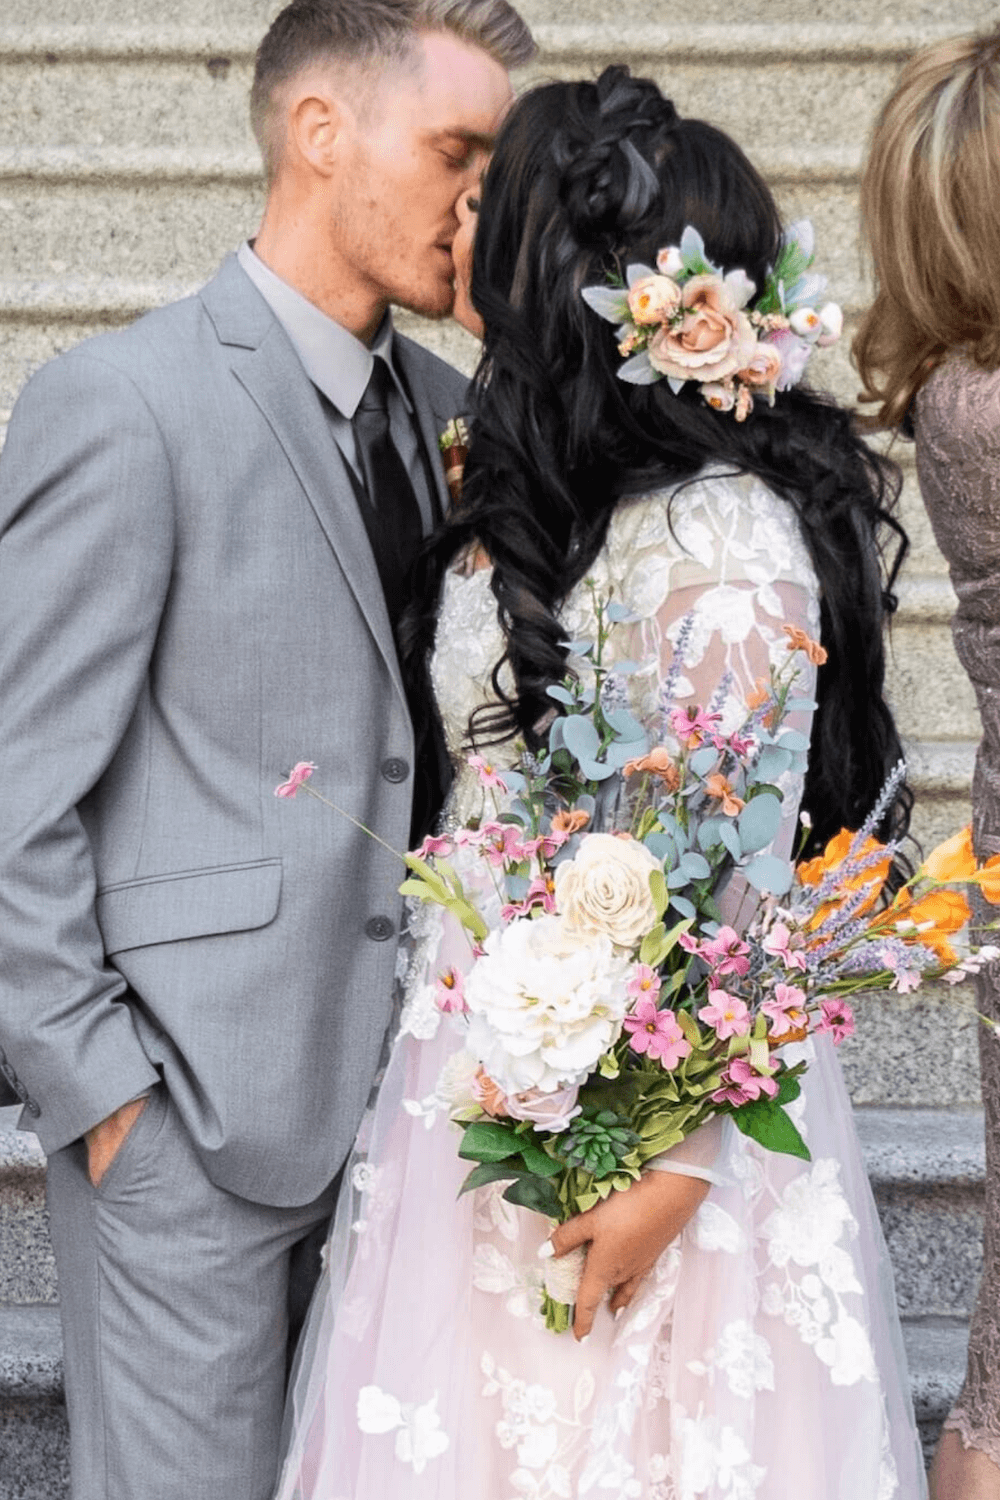 Large bouquet held by woman in wedding dress kissing man in grey suit